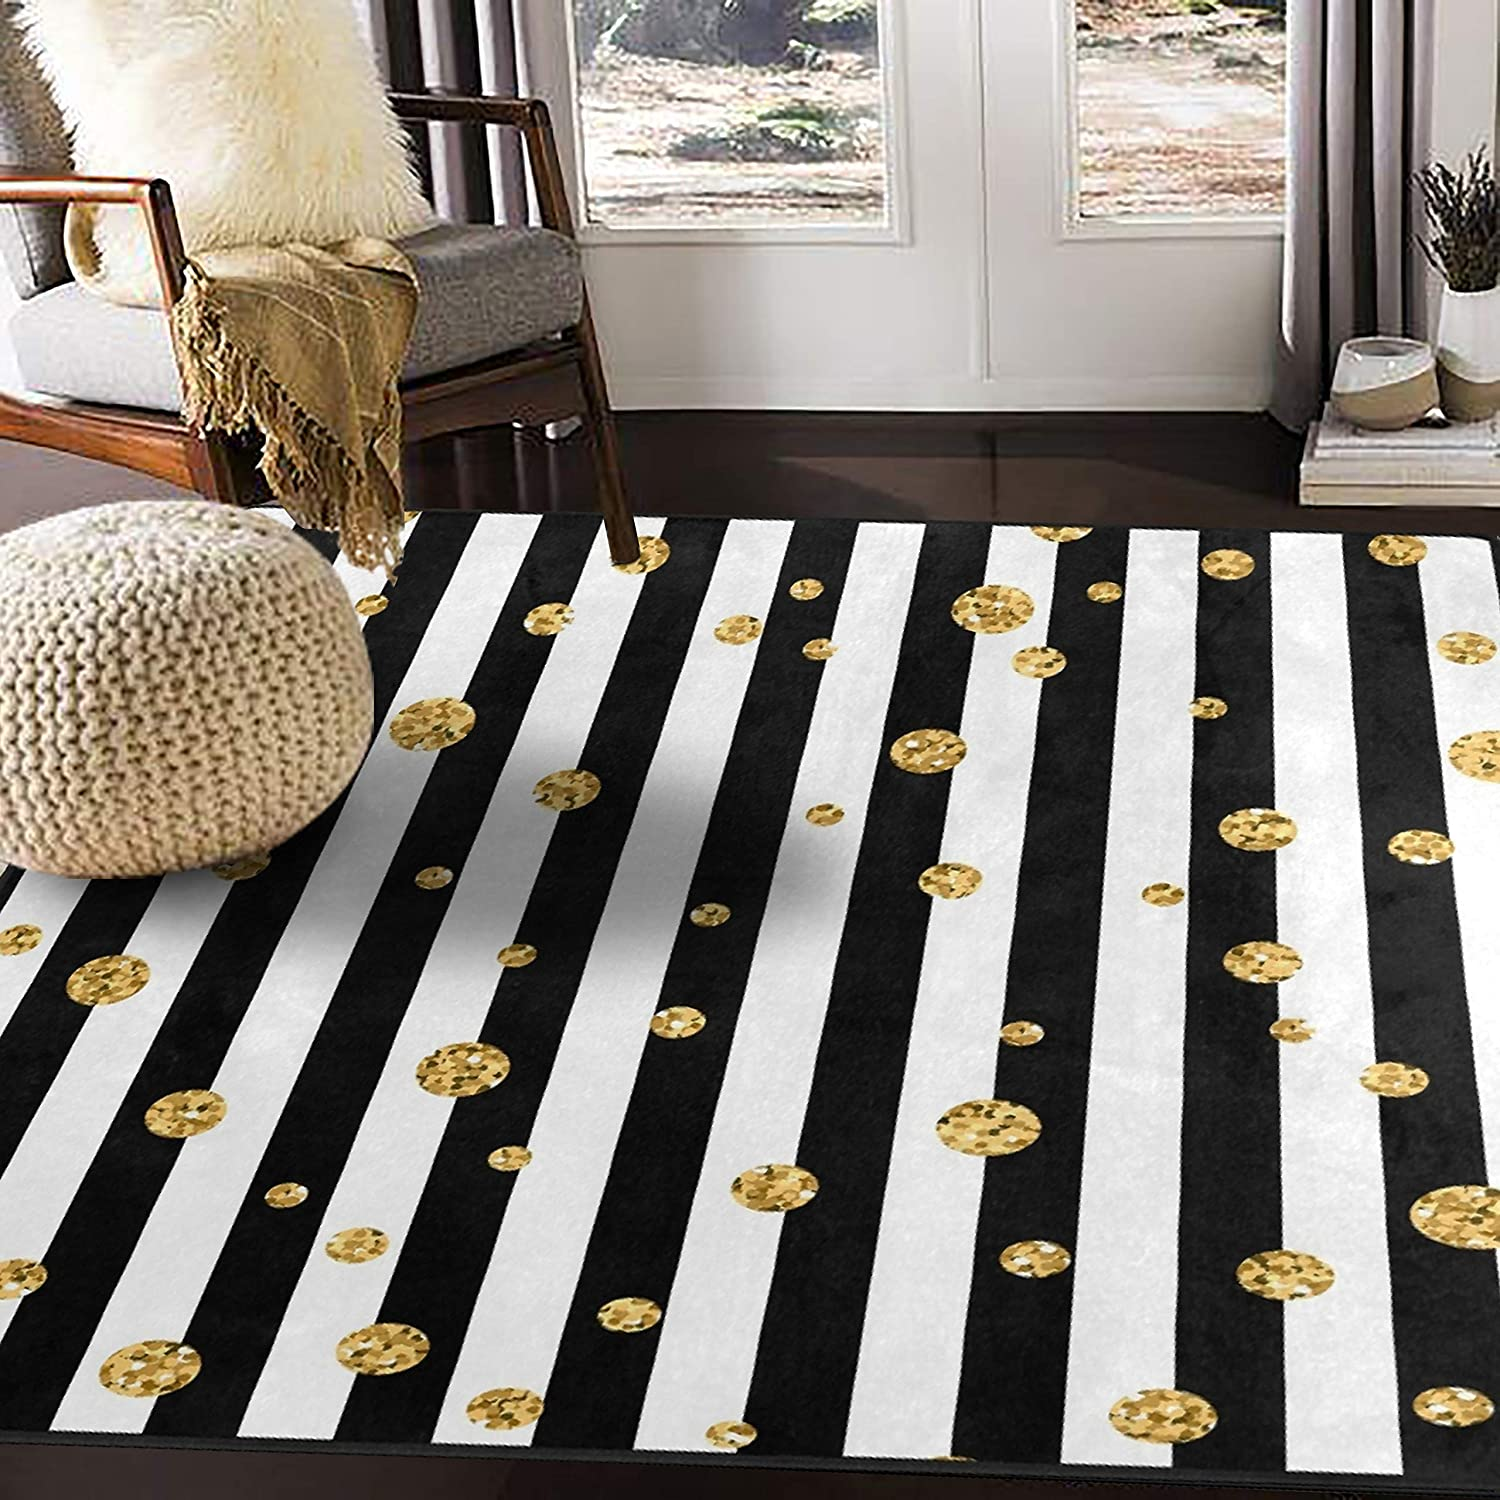 Amazon Com Alaza Gold Glitter Polka Dots On Black And White Striped Area Rug Rugs For Living Room Bedroom 5 3 X4 Home Kitchen